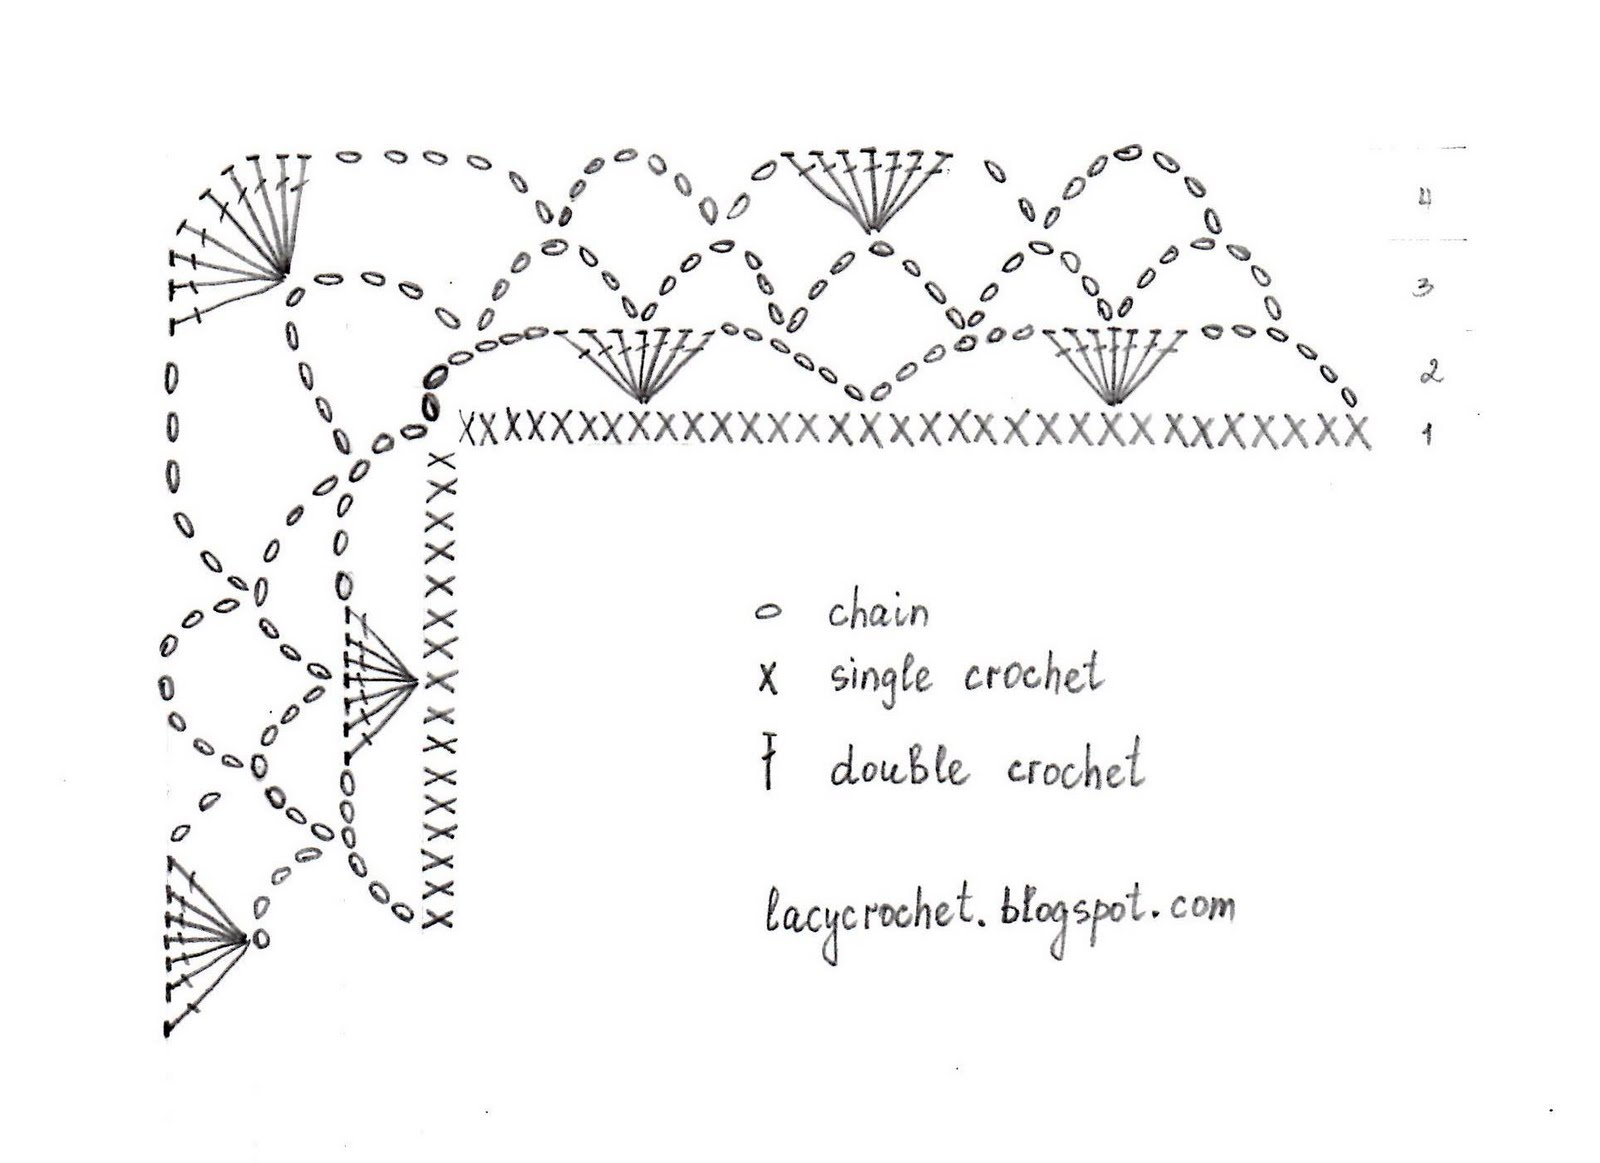 Crochet Lace Pattern For Edging : Lacy Crochet: More Crochet Edgings for Handkerchiefs